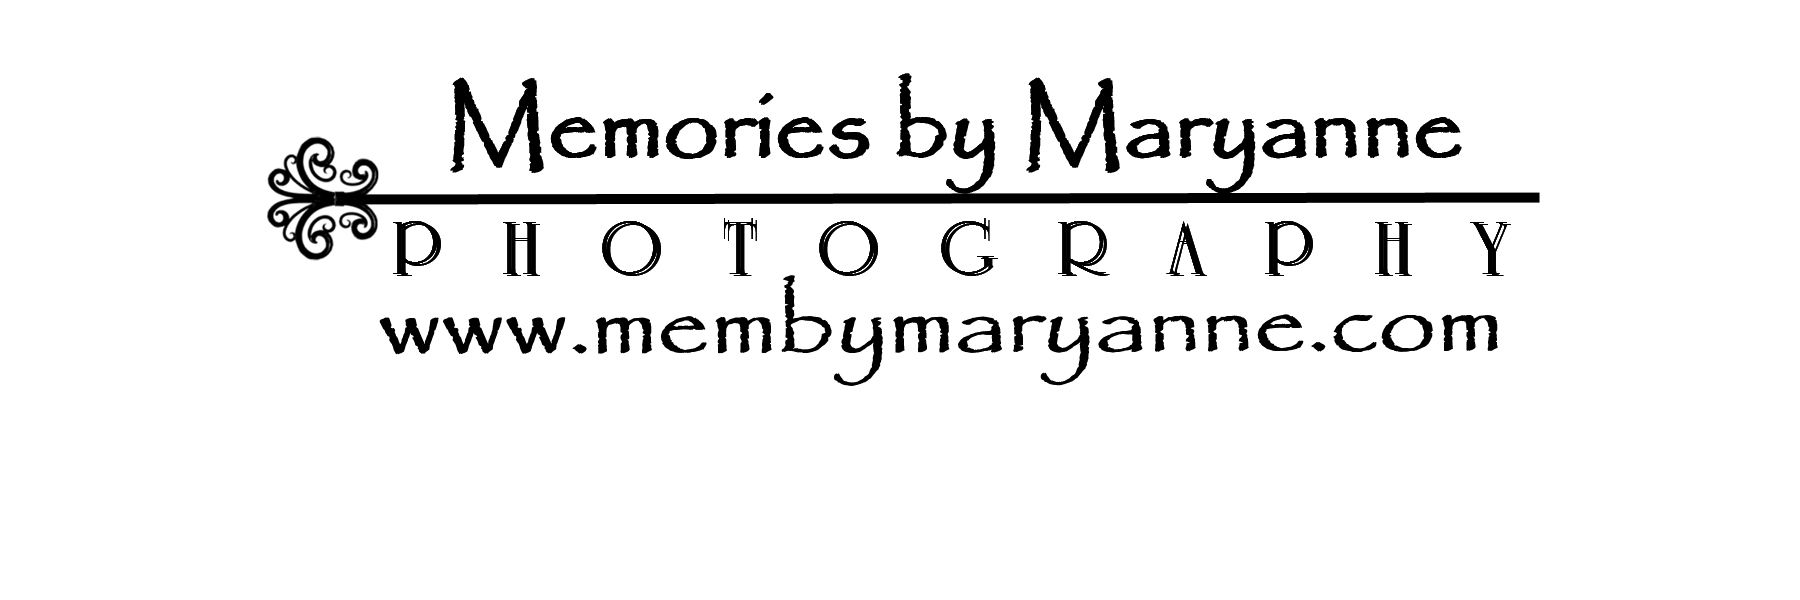 Memories by Maryanne Photography Logo